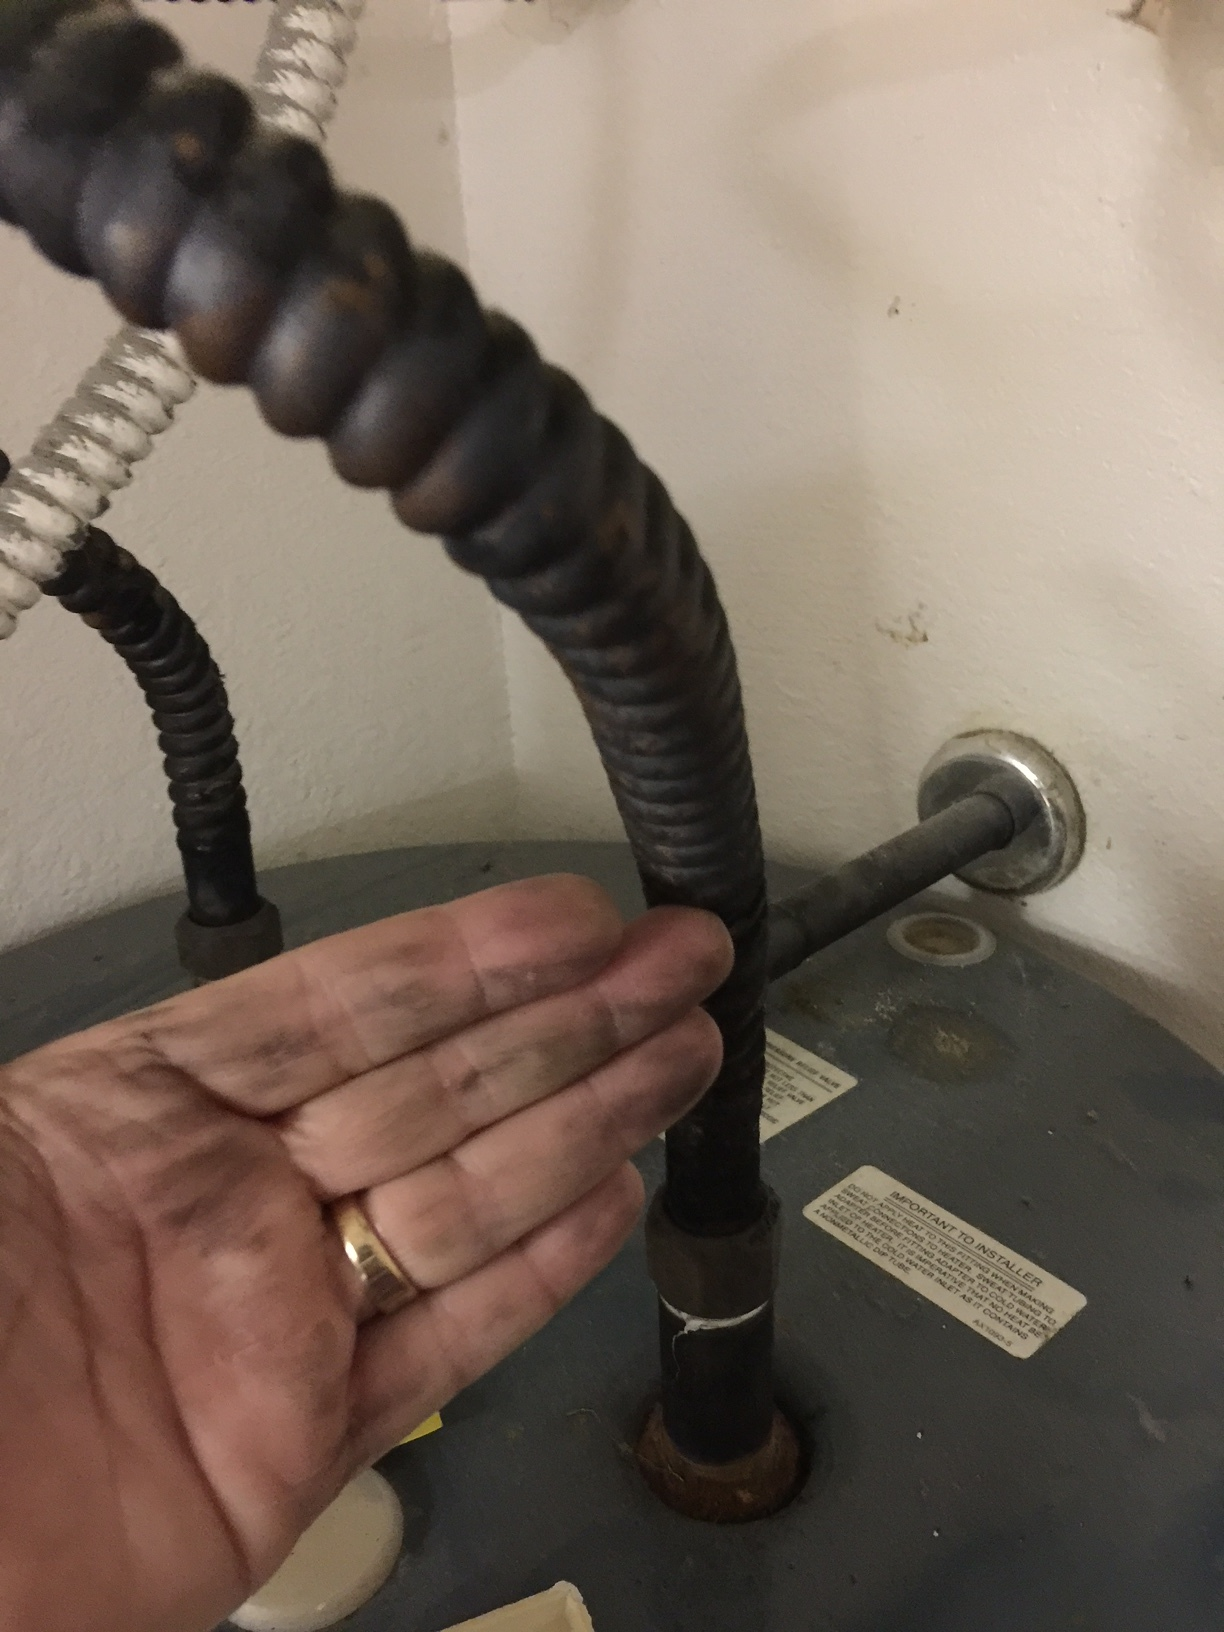 Black Rubbed Off on Hand, Hot Water Heater Copper Plumbing Line Due to Chinese Drywall Found During Home Inspection Houston Texas